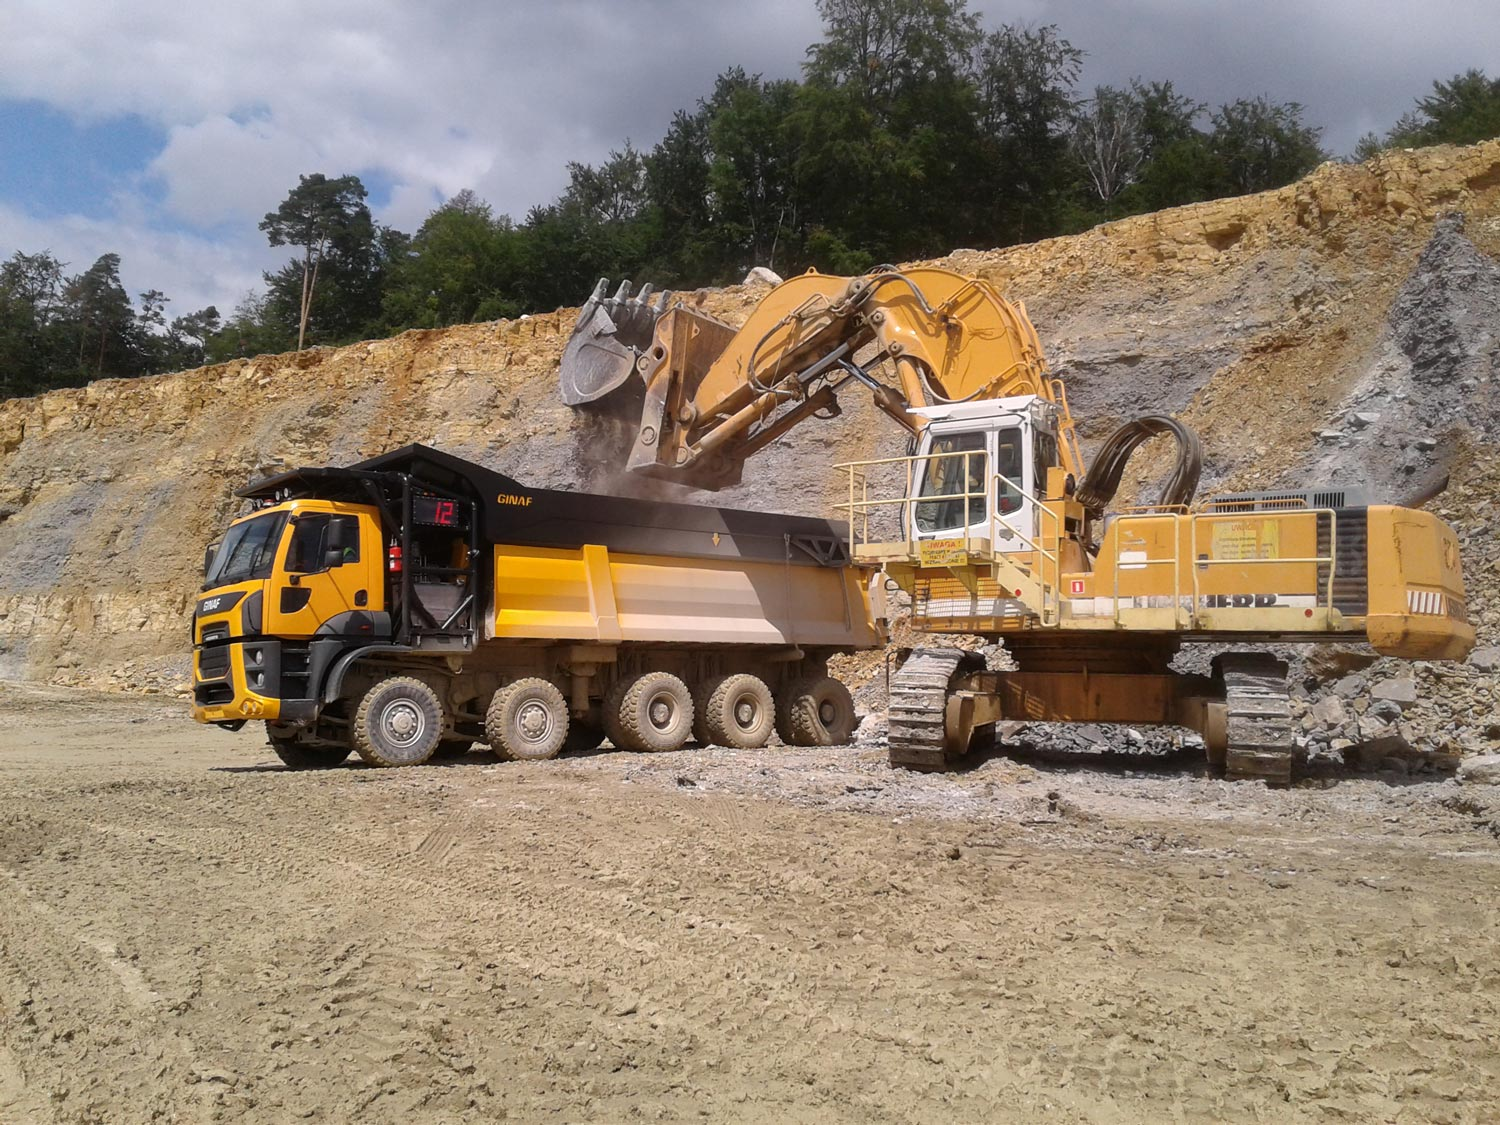 Ginaf mining your dedicated partner in world wide mining activities - Mining images hd ...